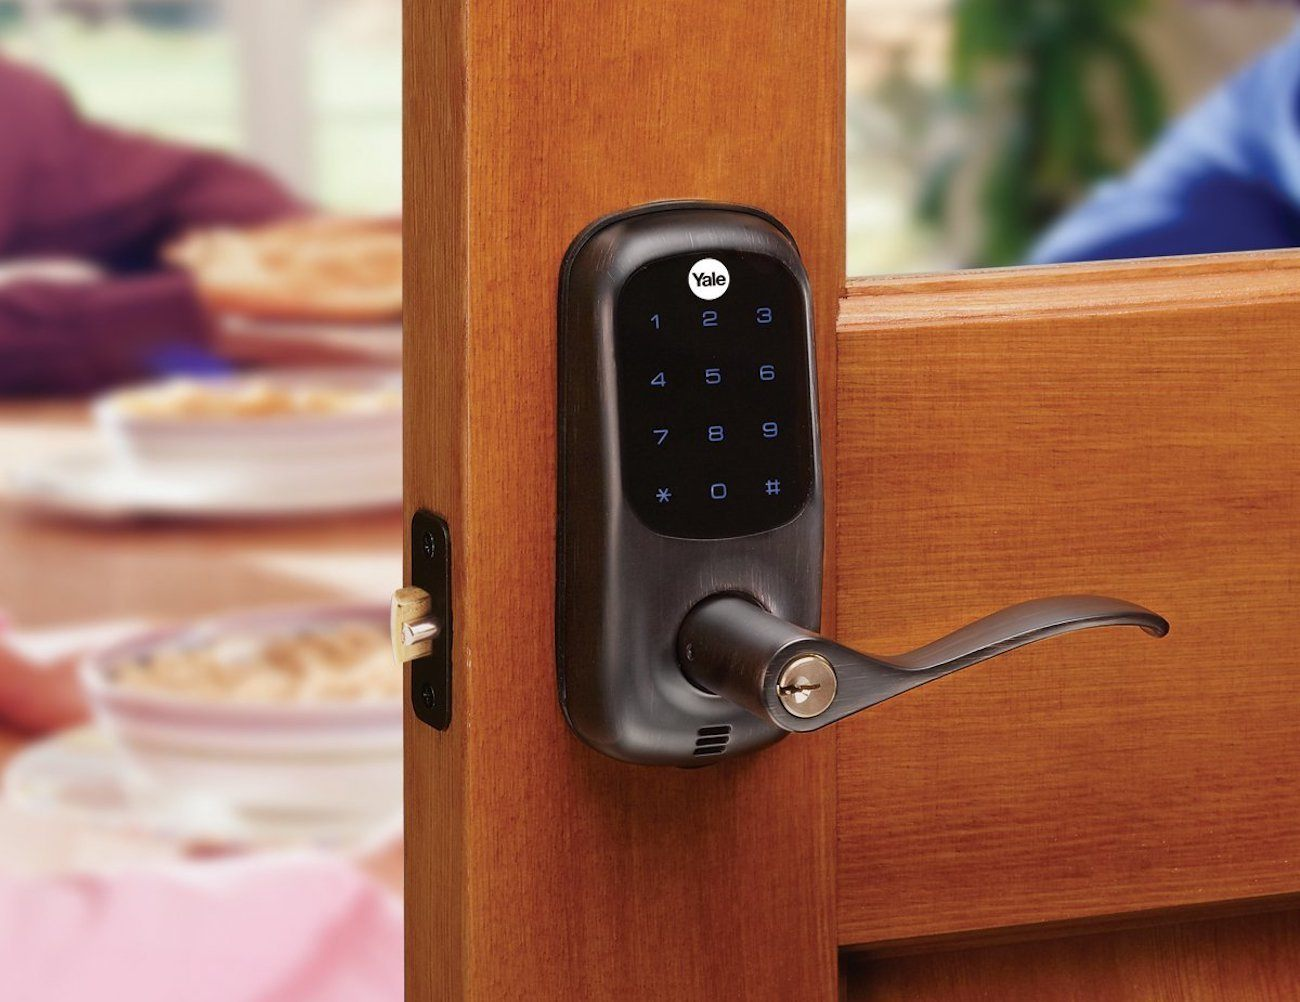 Yale Real Living Keyless Lever Lock 187 Gadget Flow